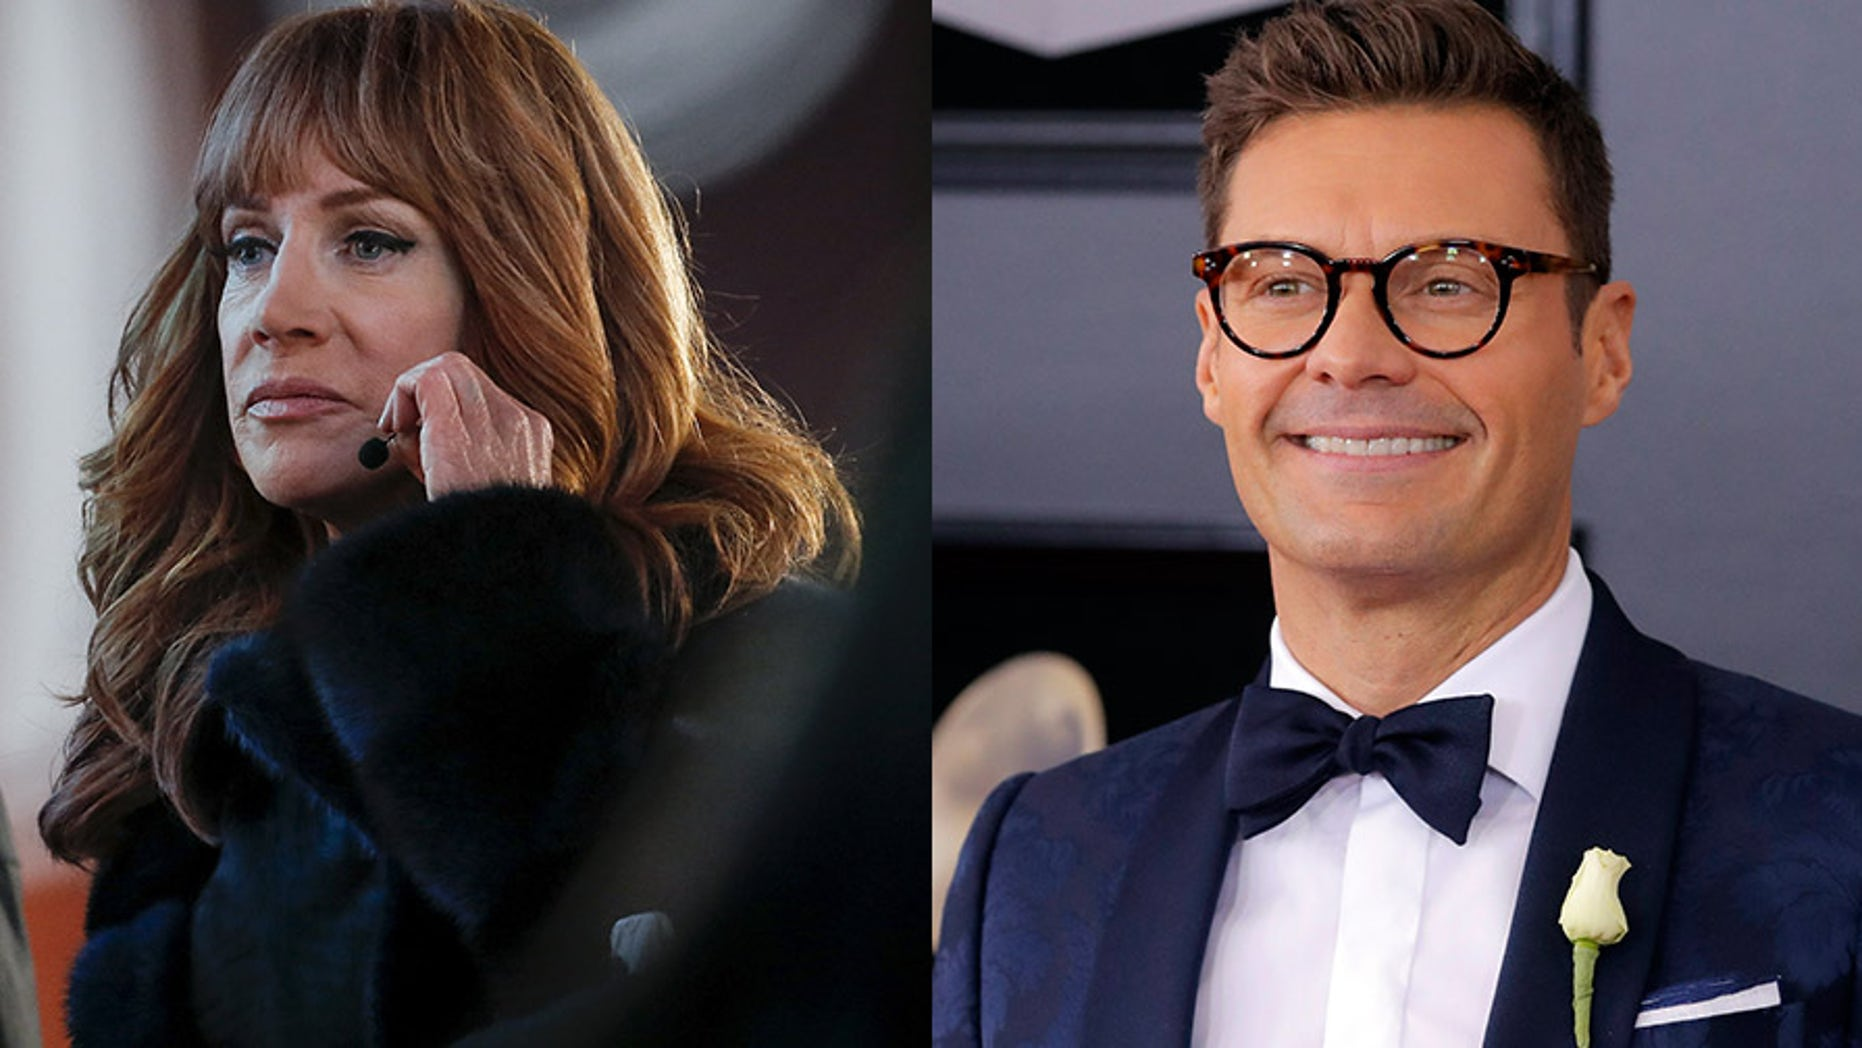 Kathy Griffin offered stylist Suzie Hardy a job after she accused Ryan Seacrest of sexual harassment.